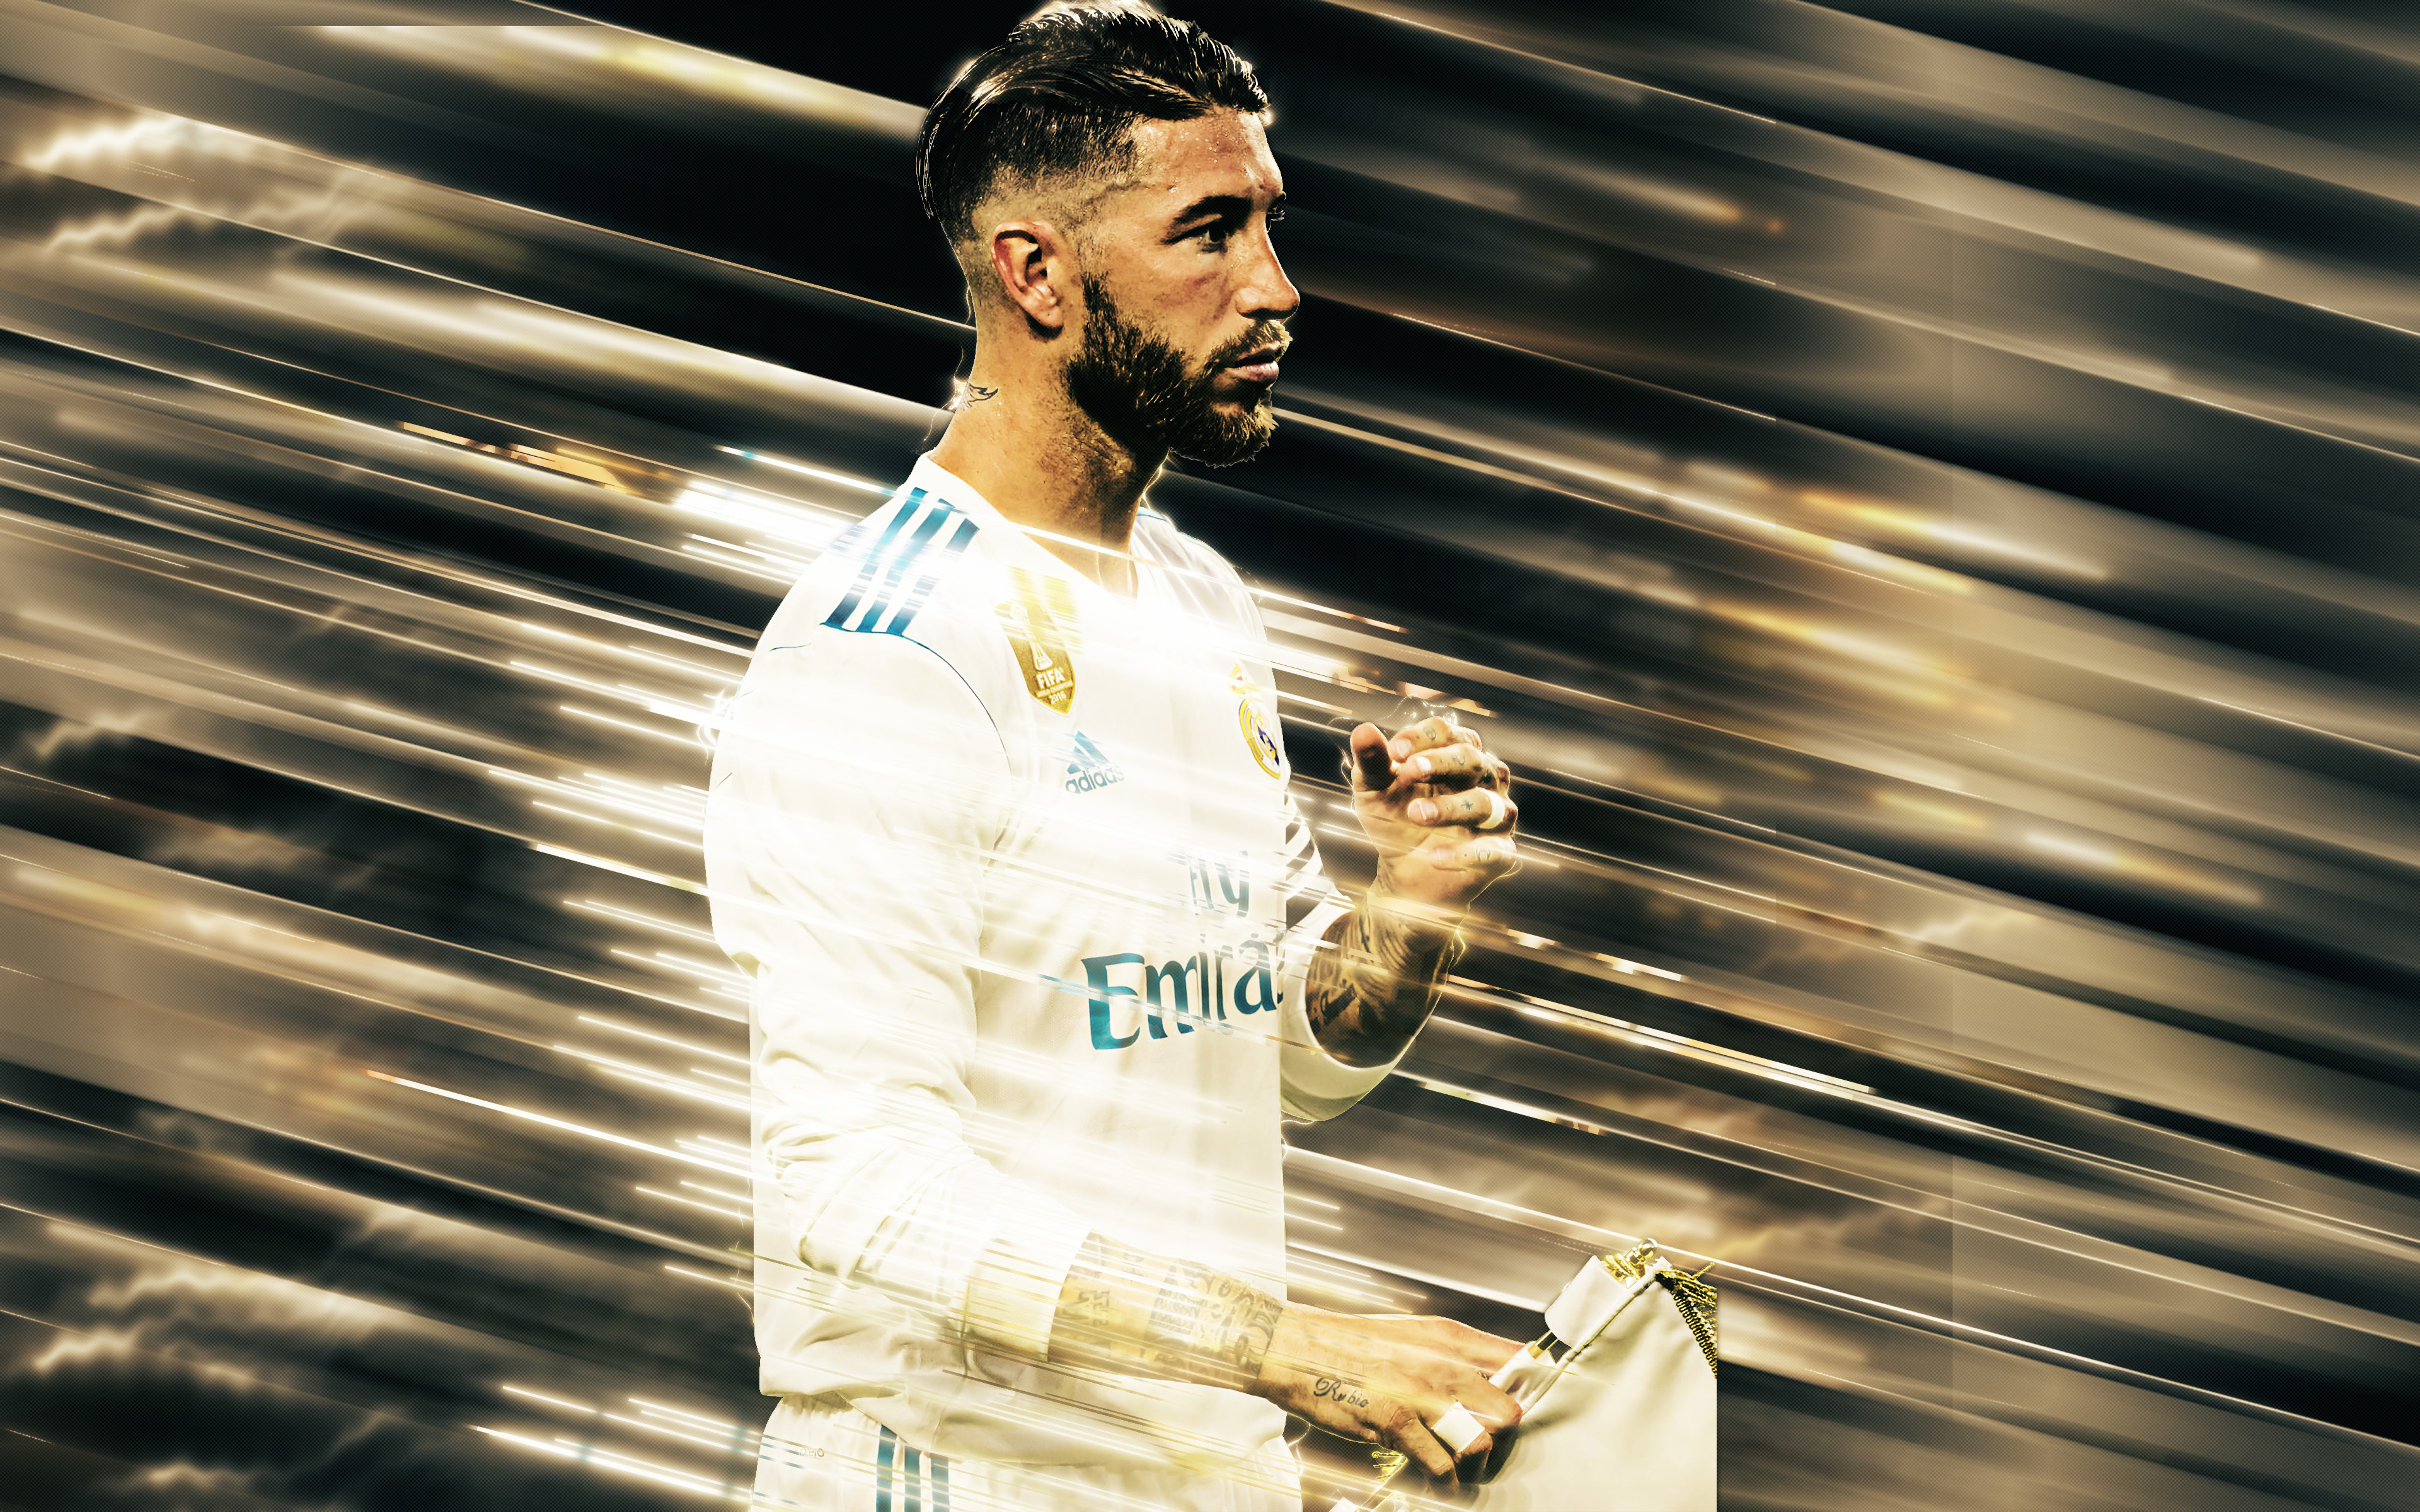 Sergio Ramos Wallpapers   Top Sergio Ramos Backgrounds 3840x2400